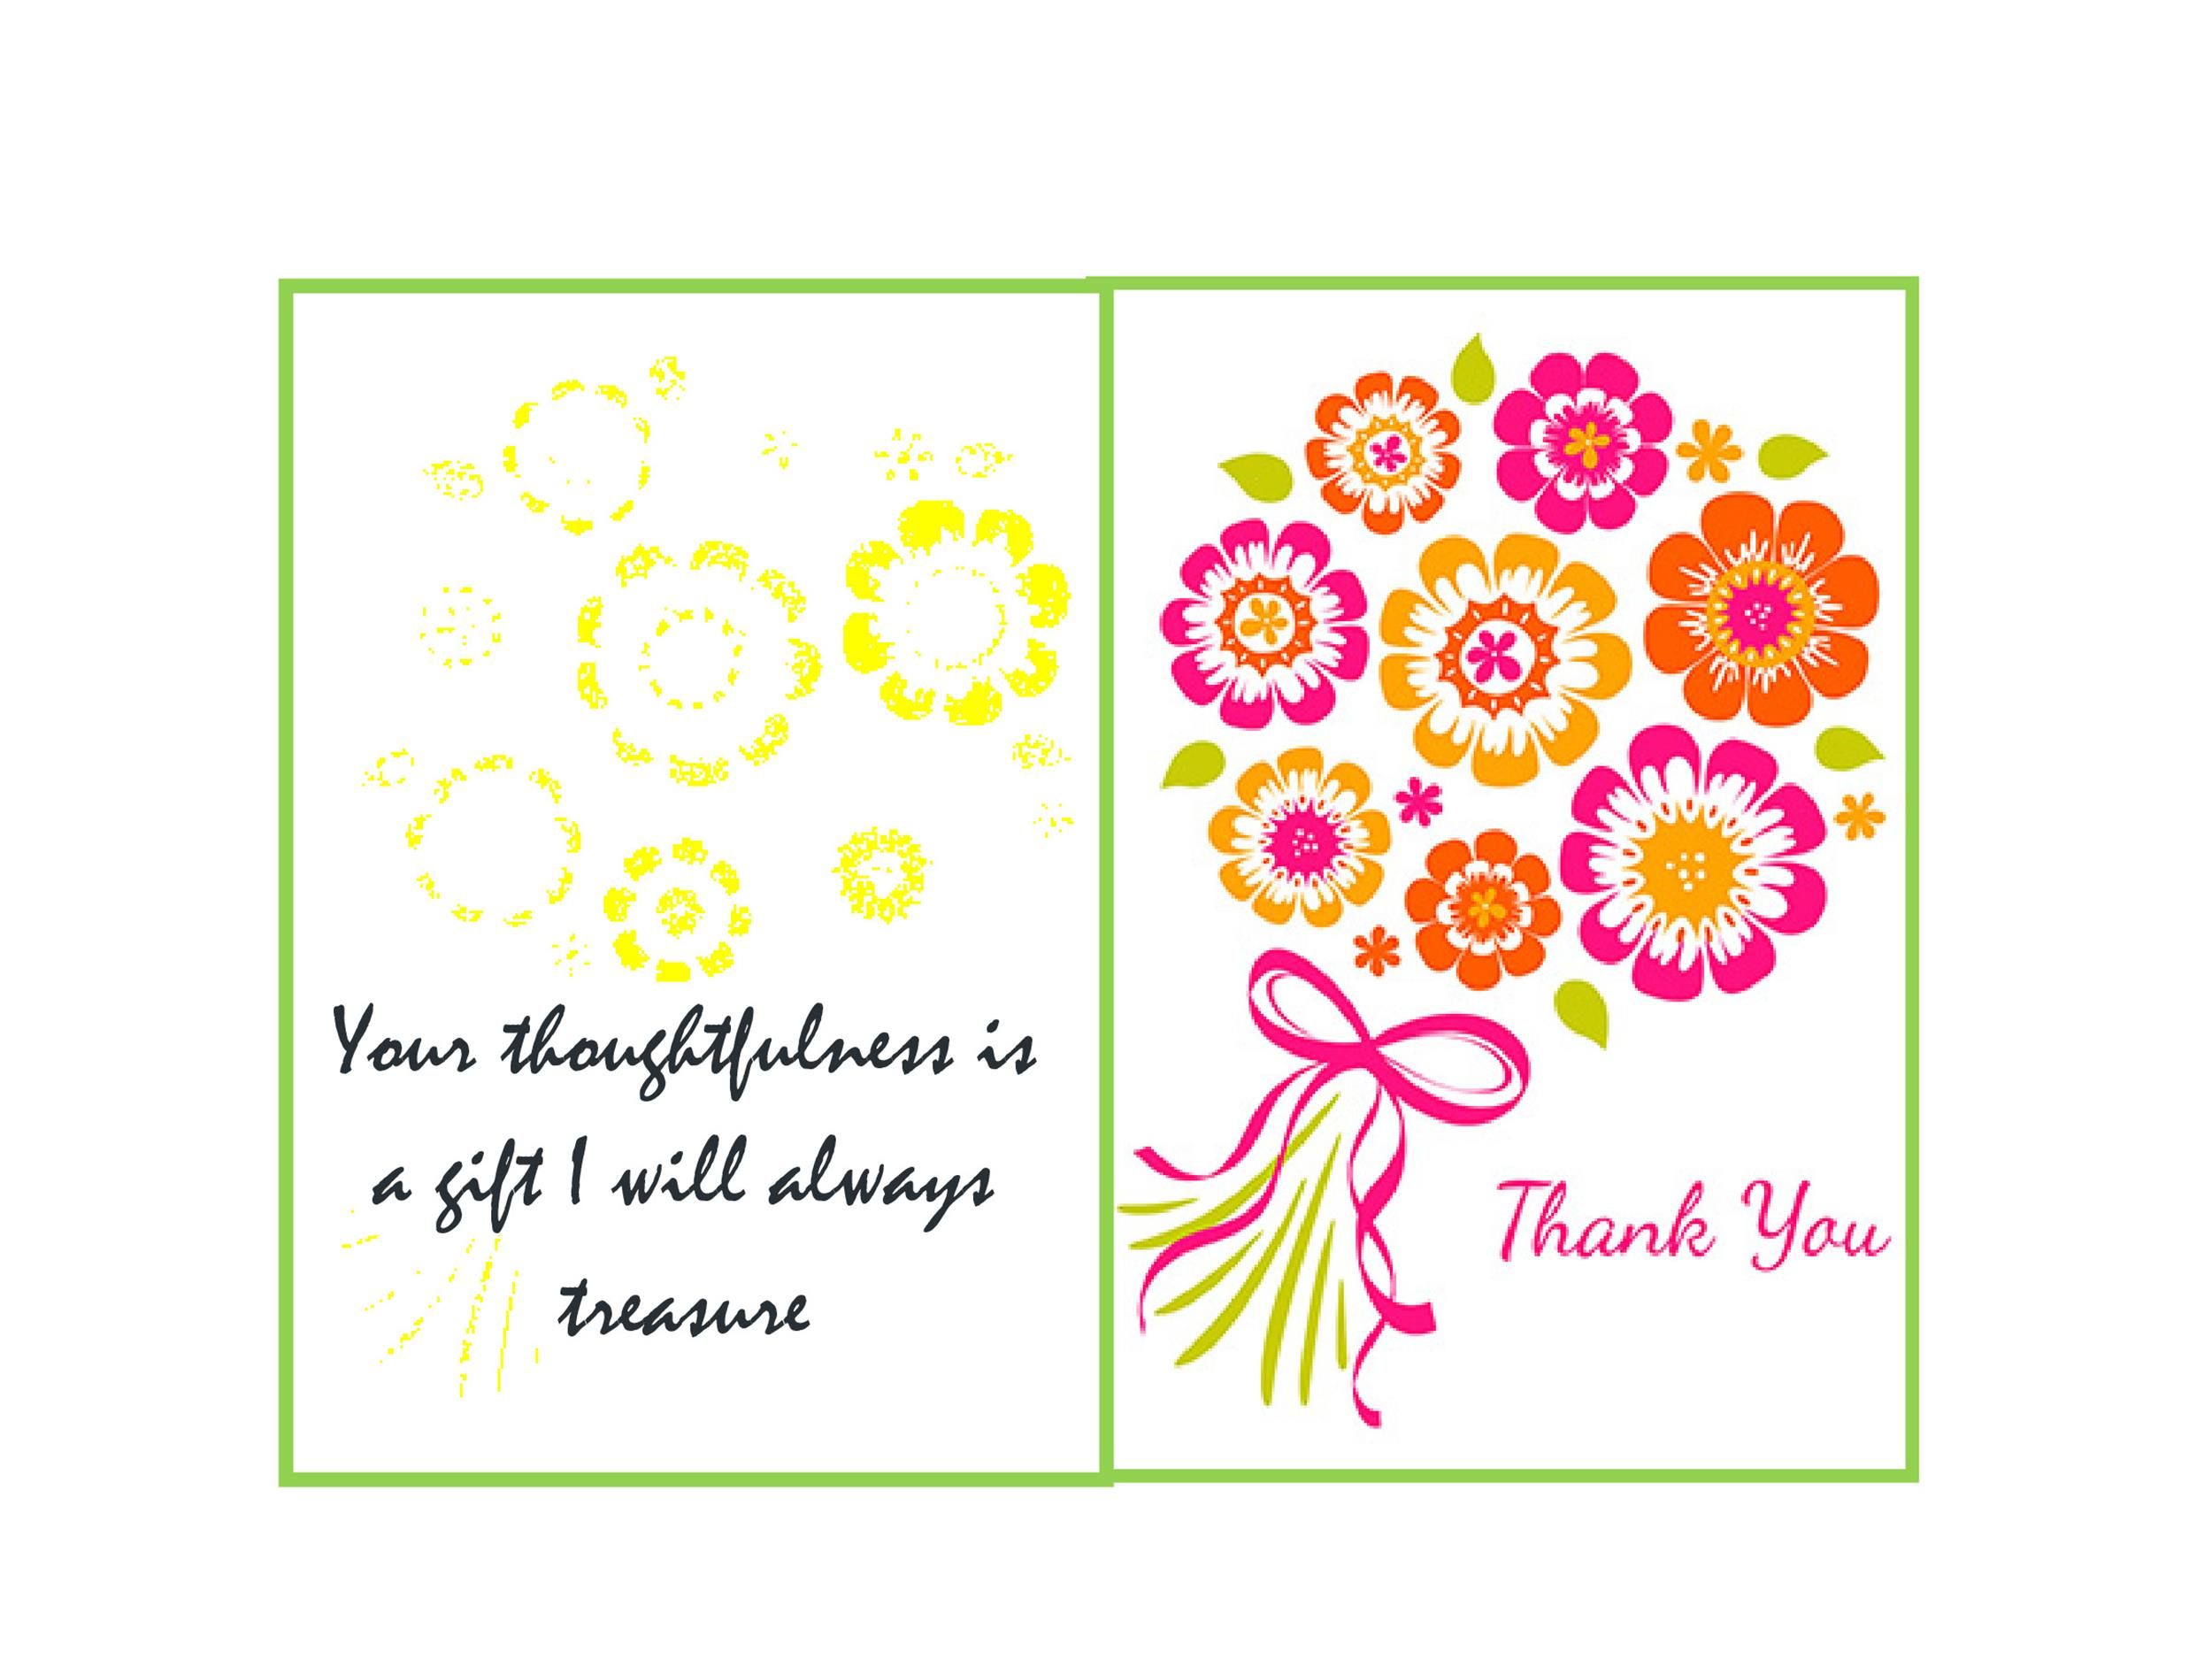 Thank You Cards Templates wedding thank you card template card – Create Wedding Thank You Cards Online